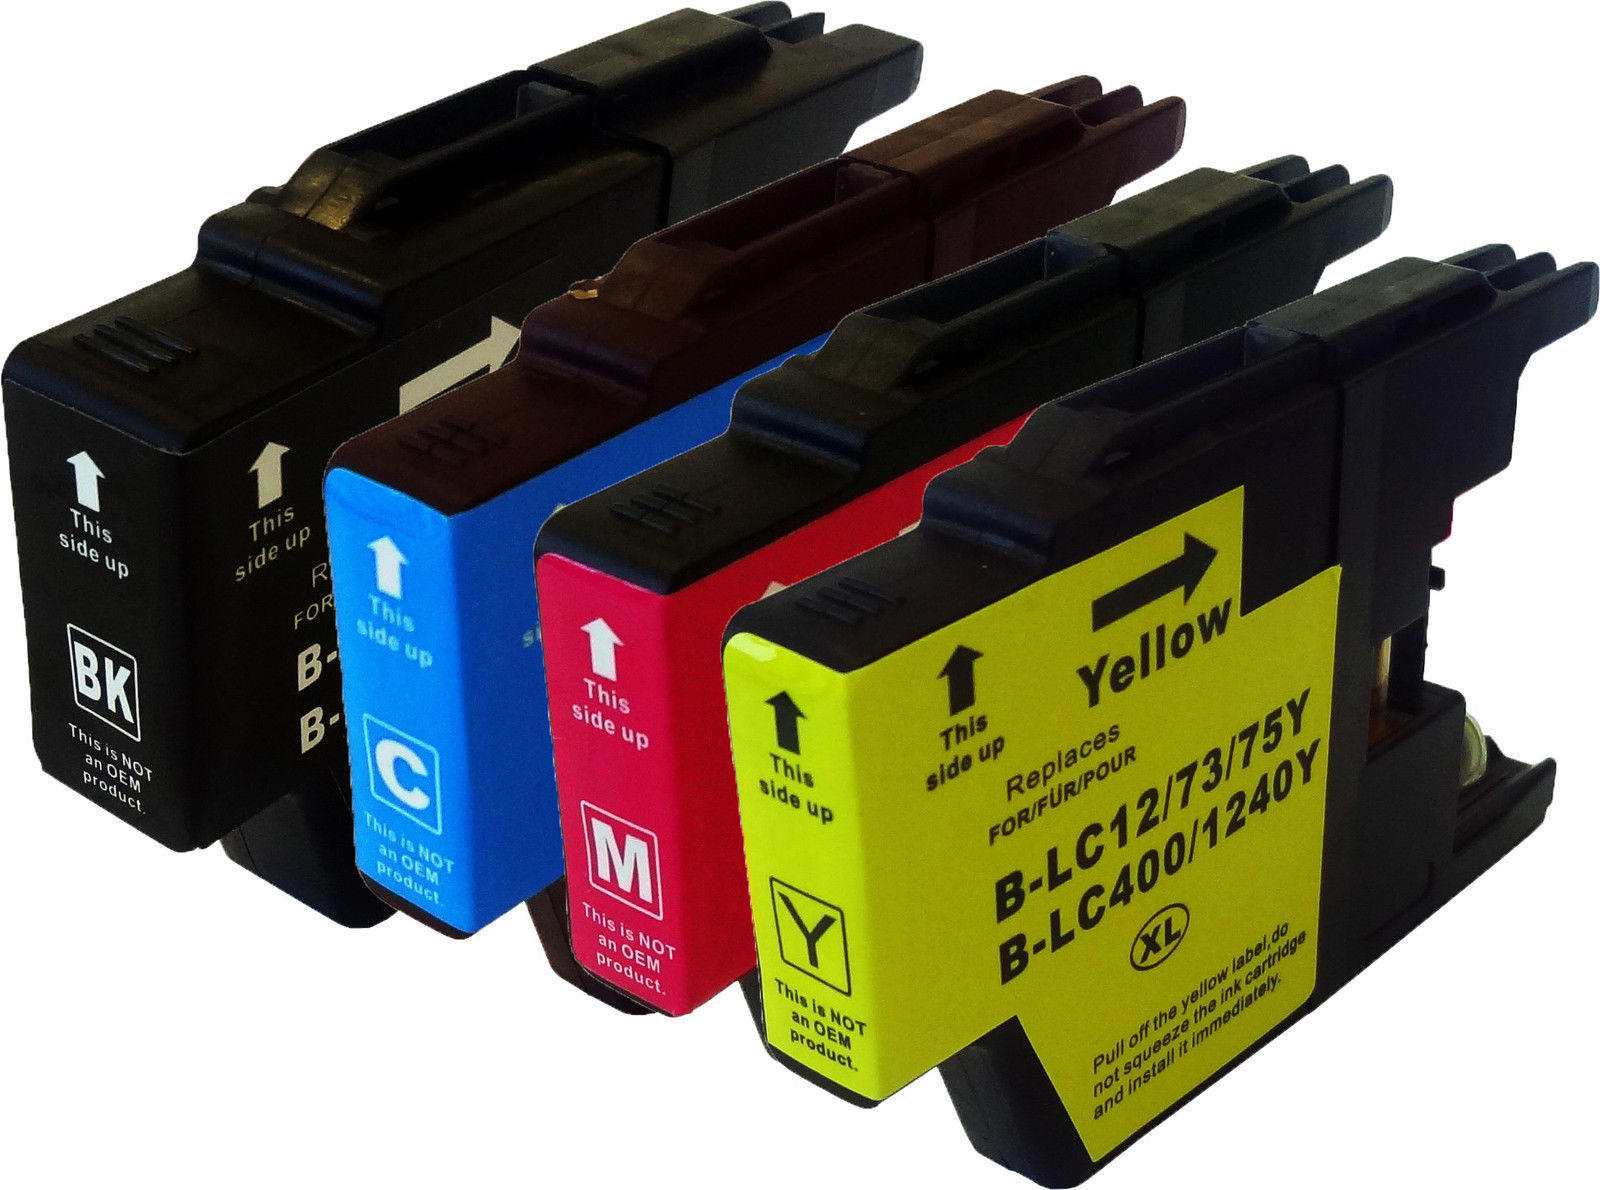 Compatible ink cartridges for Brother printers